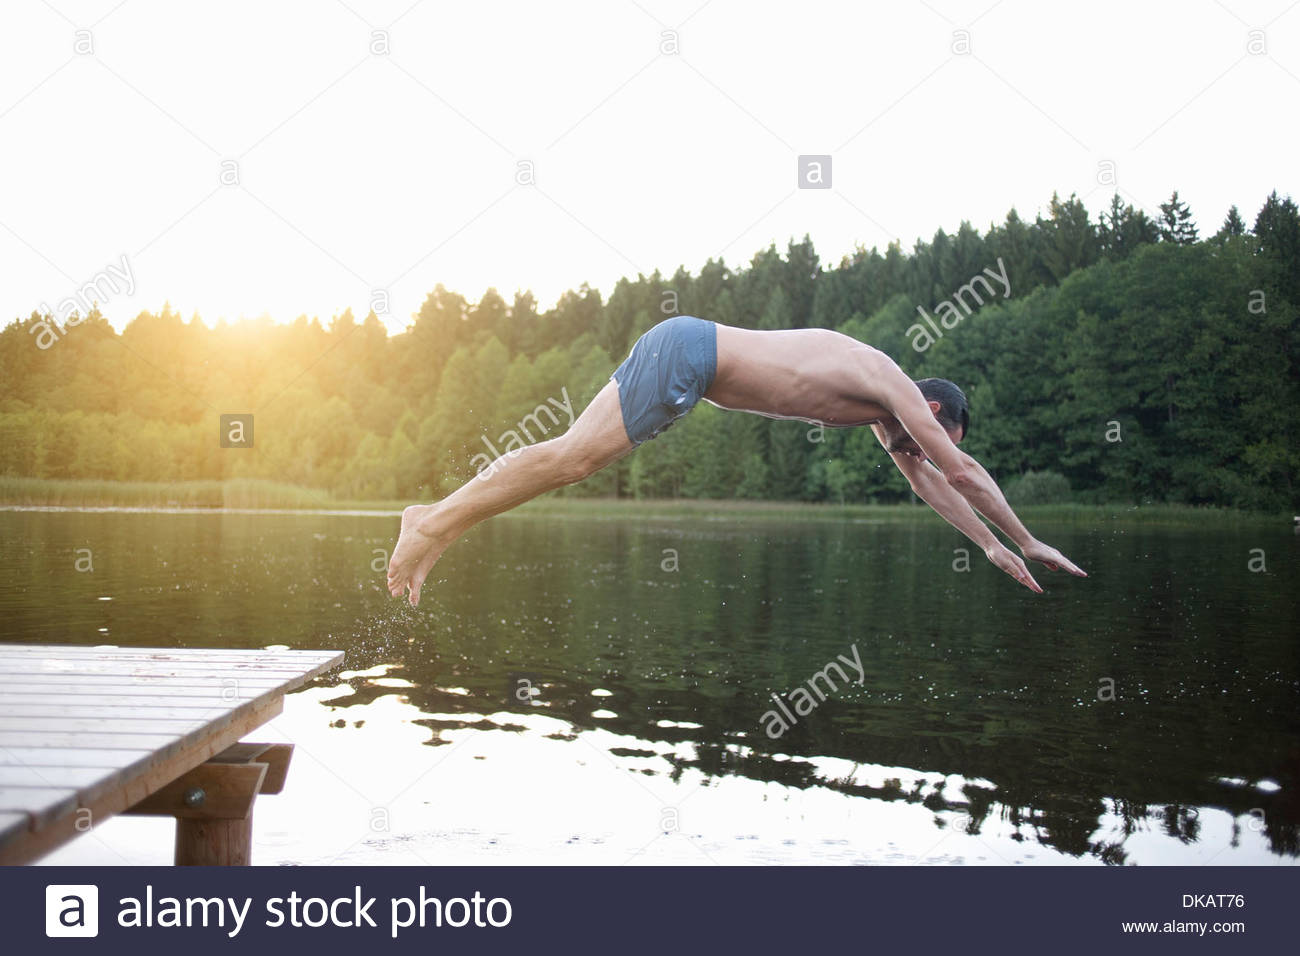 Mature man diving into lake - Stock Image